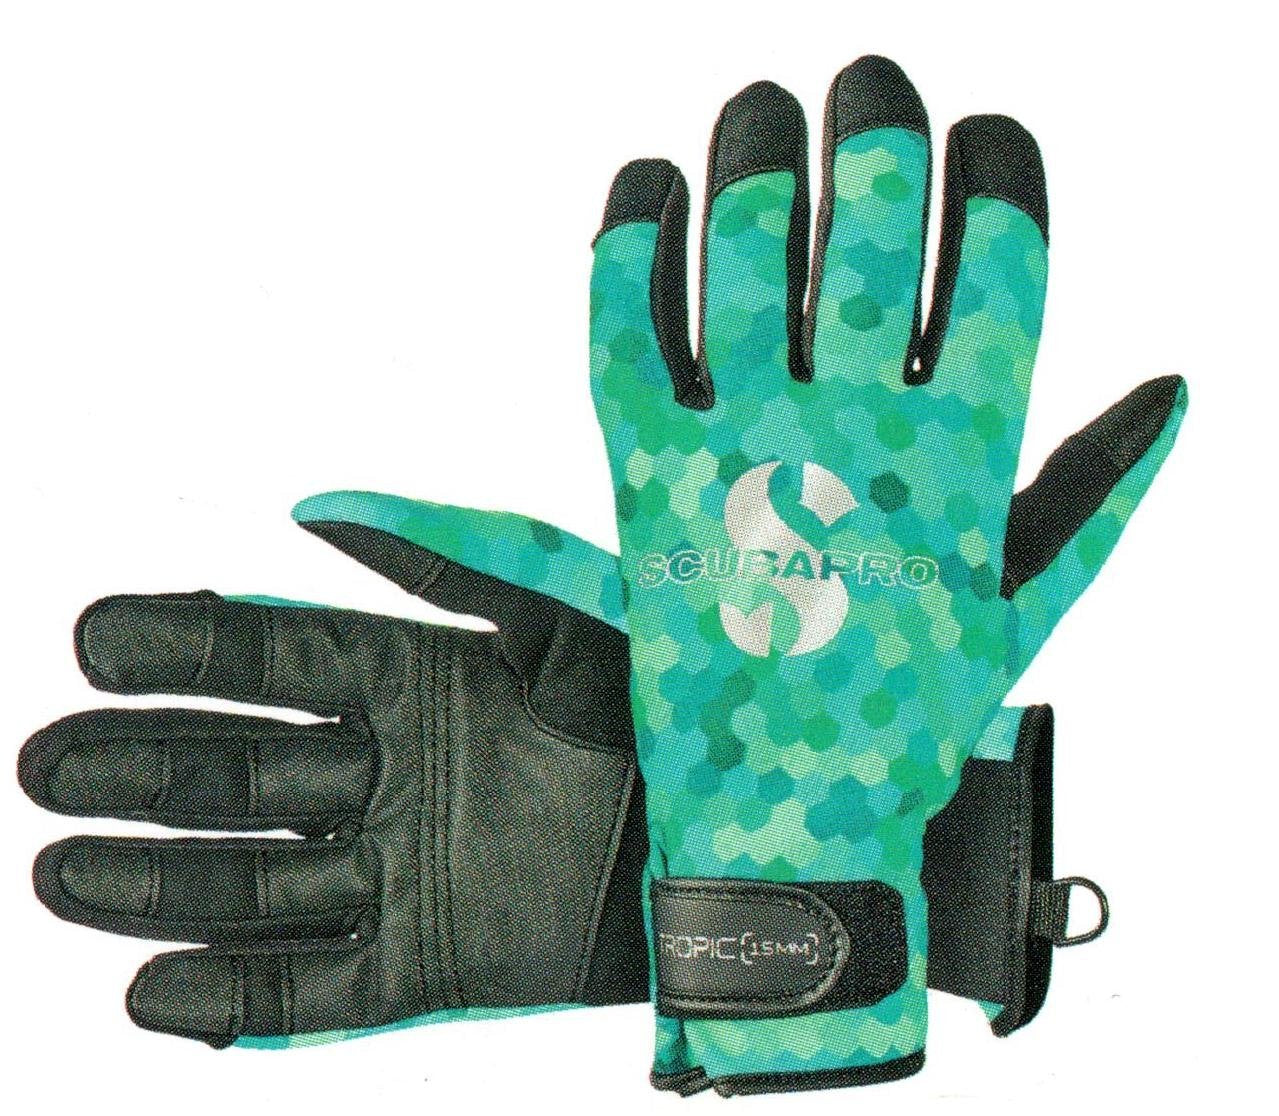 Scubapro Tropic 1.5mm Gloves / Teal / XL